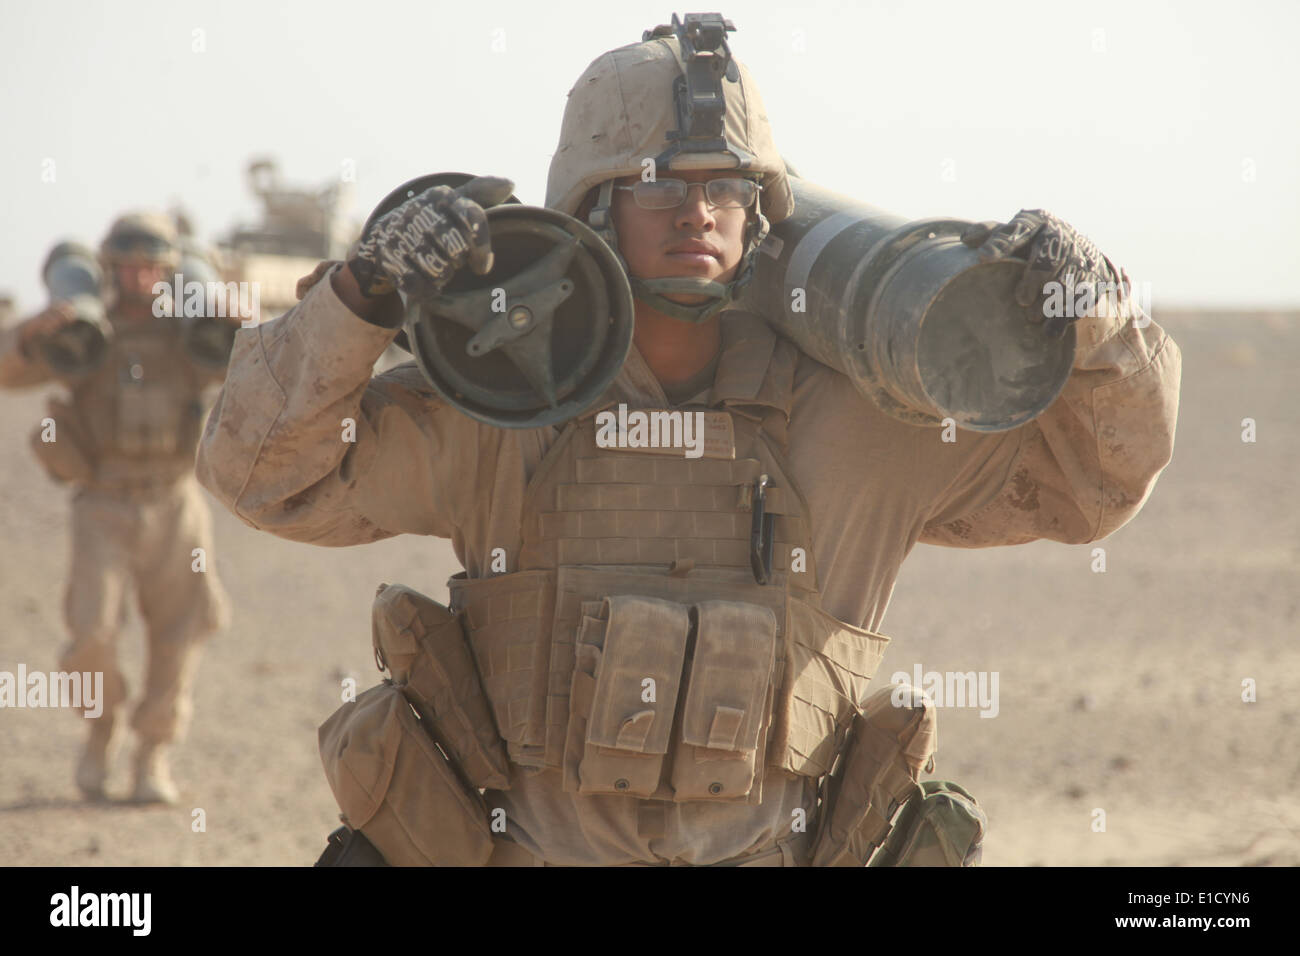 U.S. Marine Corps Lance Cpl. Juan Acosta carries powder charges in the Helmand province of Afghanistan Oct. 28, 2009. Acosta is - Stock Image